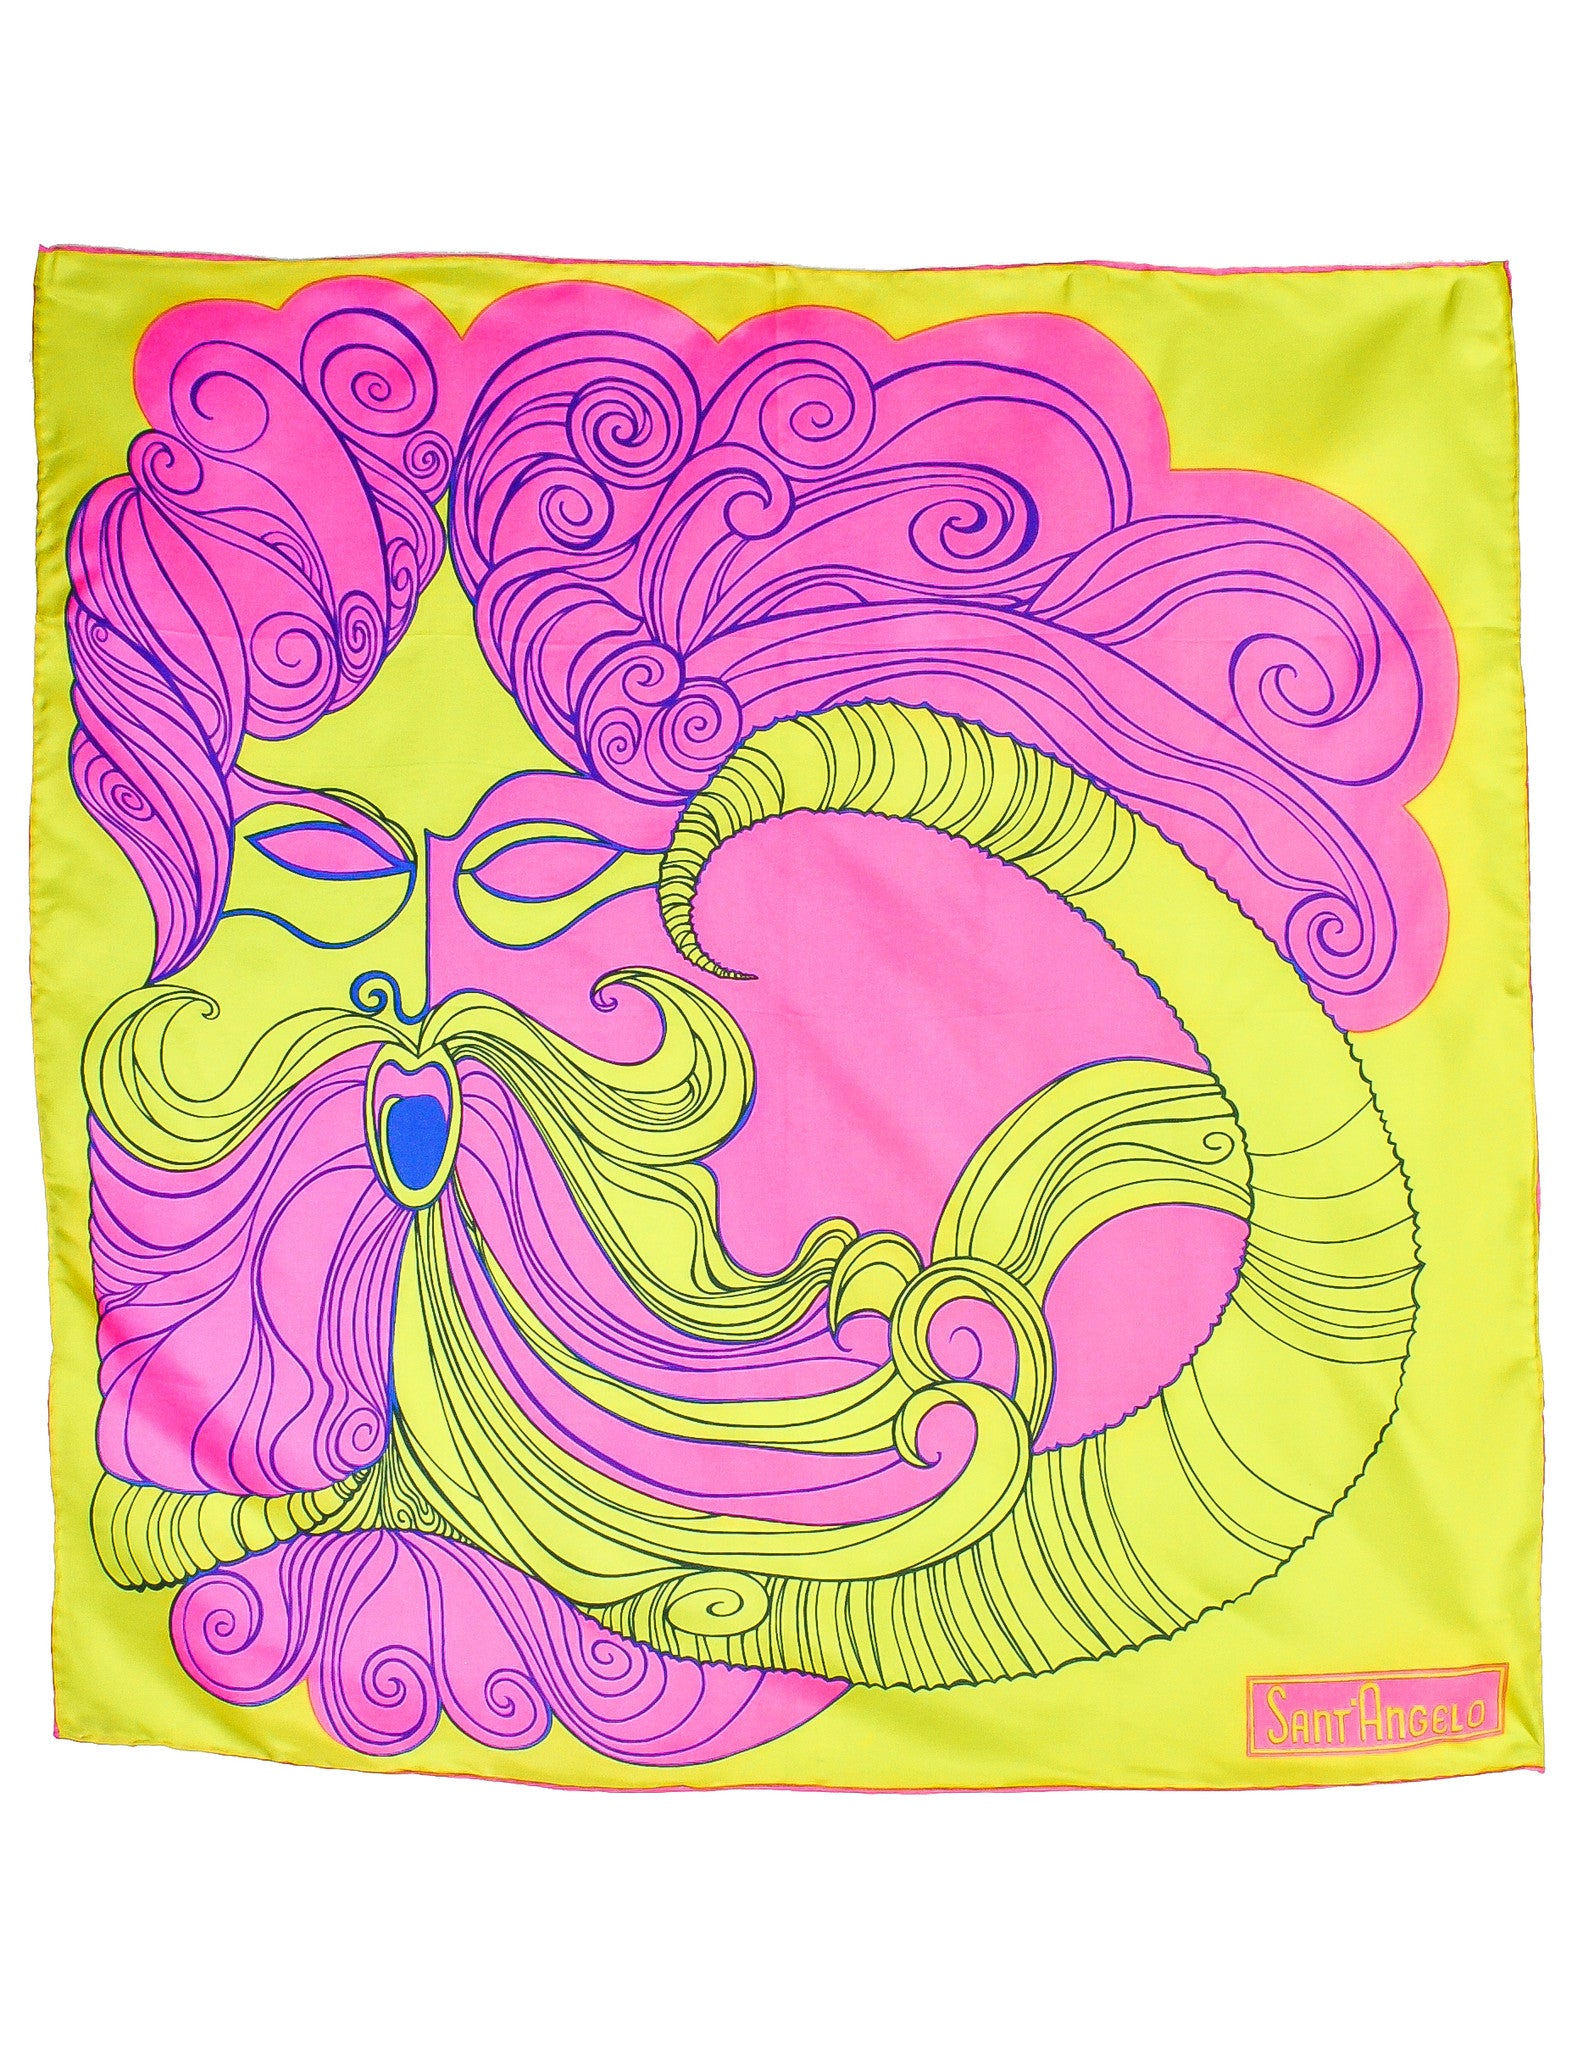 Sant'Angelo Vintage Hot Pink and Chartreuse Silk Scarf - Amarcord Vintage Fashion  - 1